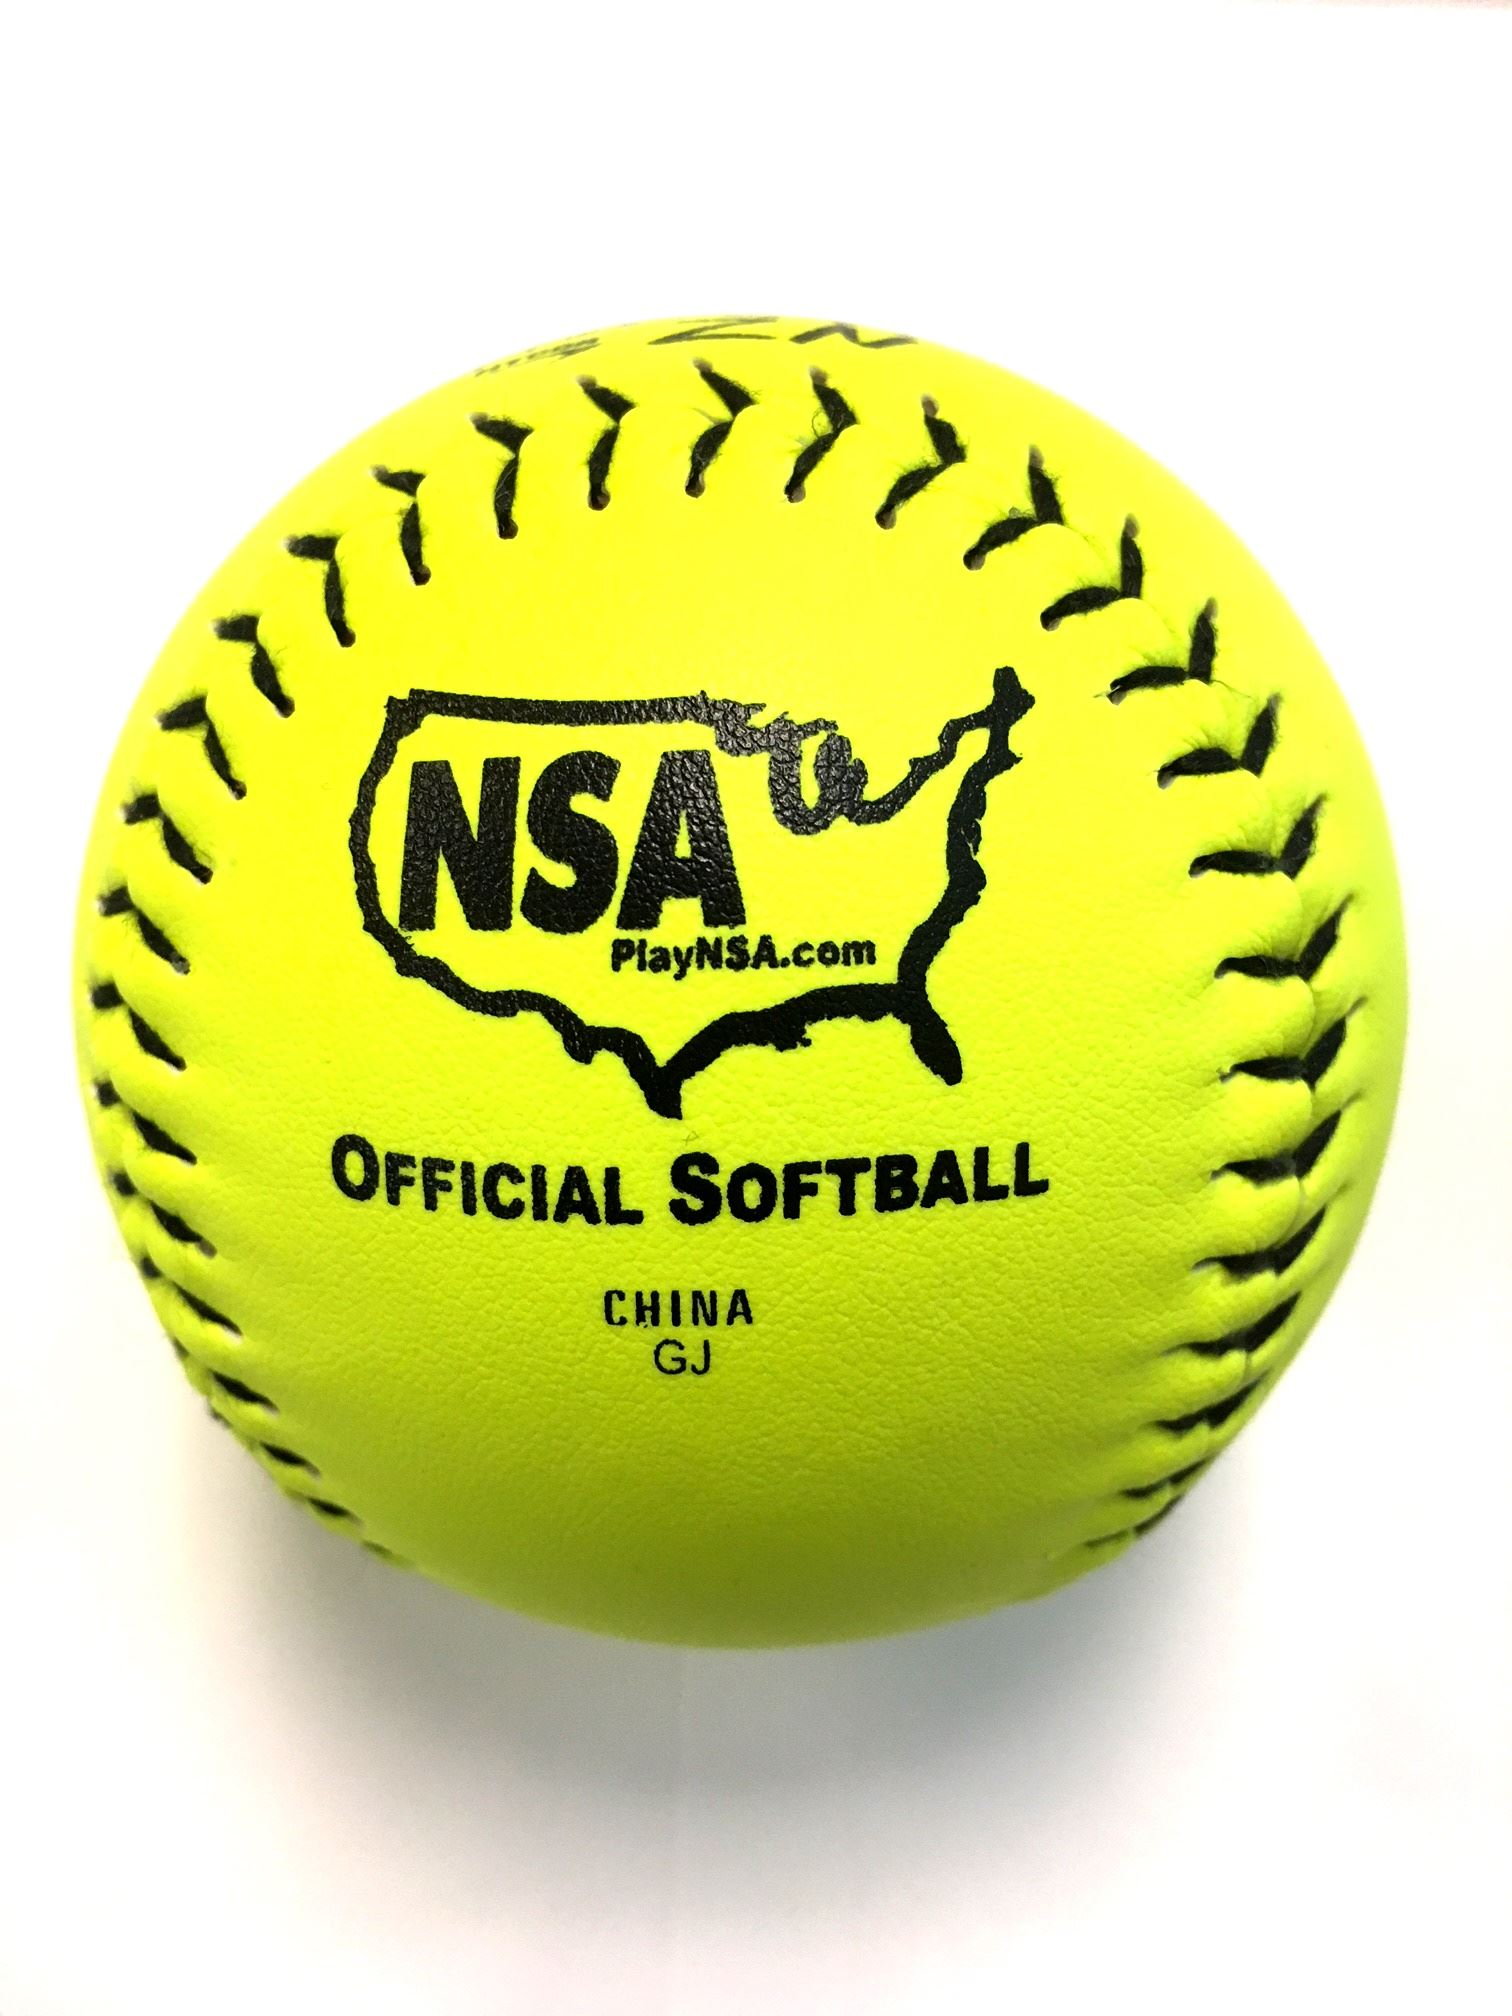 2018 NSA (Official Softball)